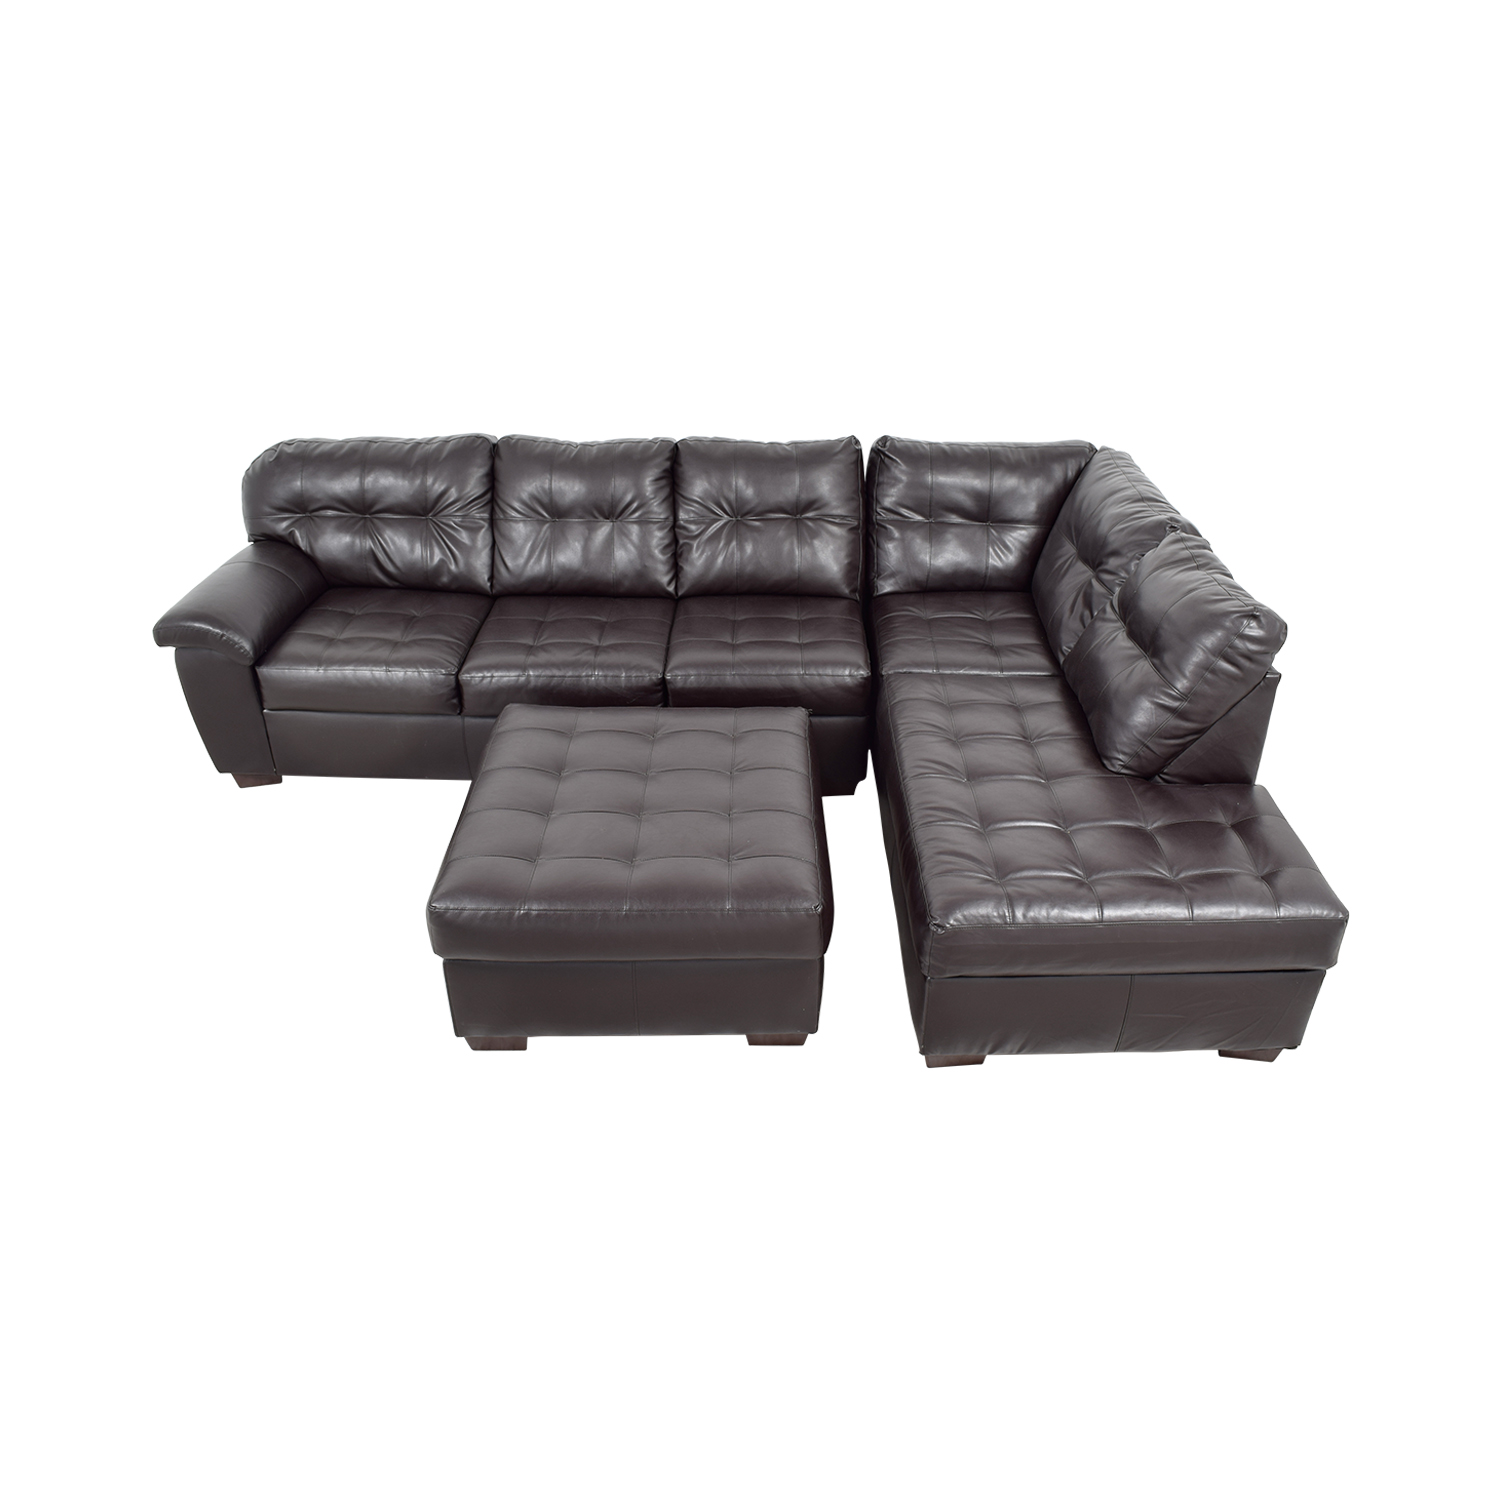 simmons small sectional sofa sleeper chaise sectionals used for sale